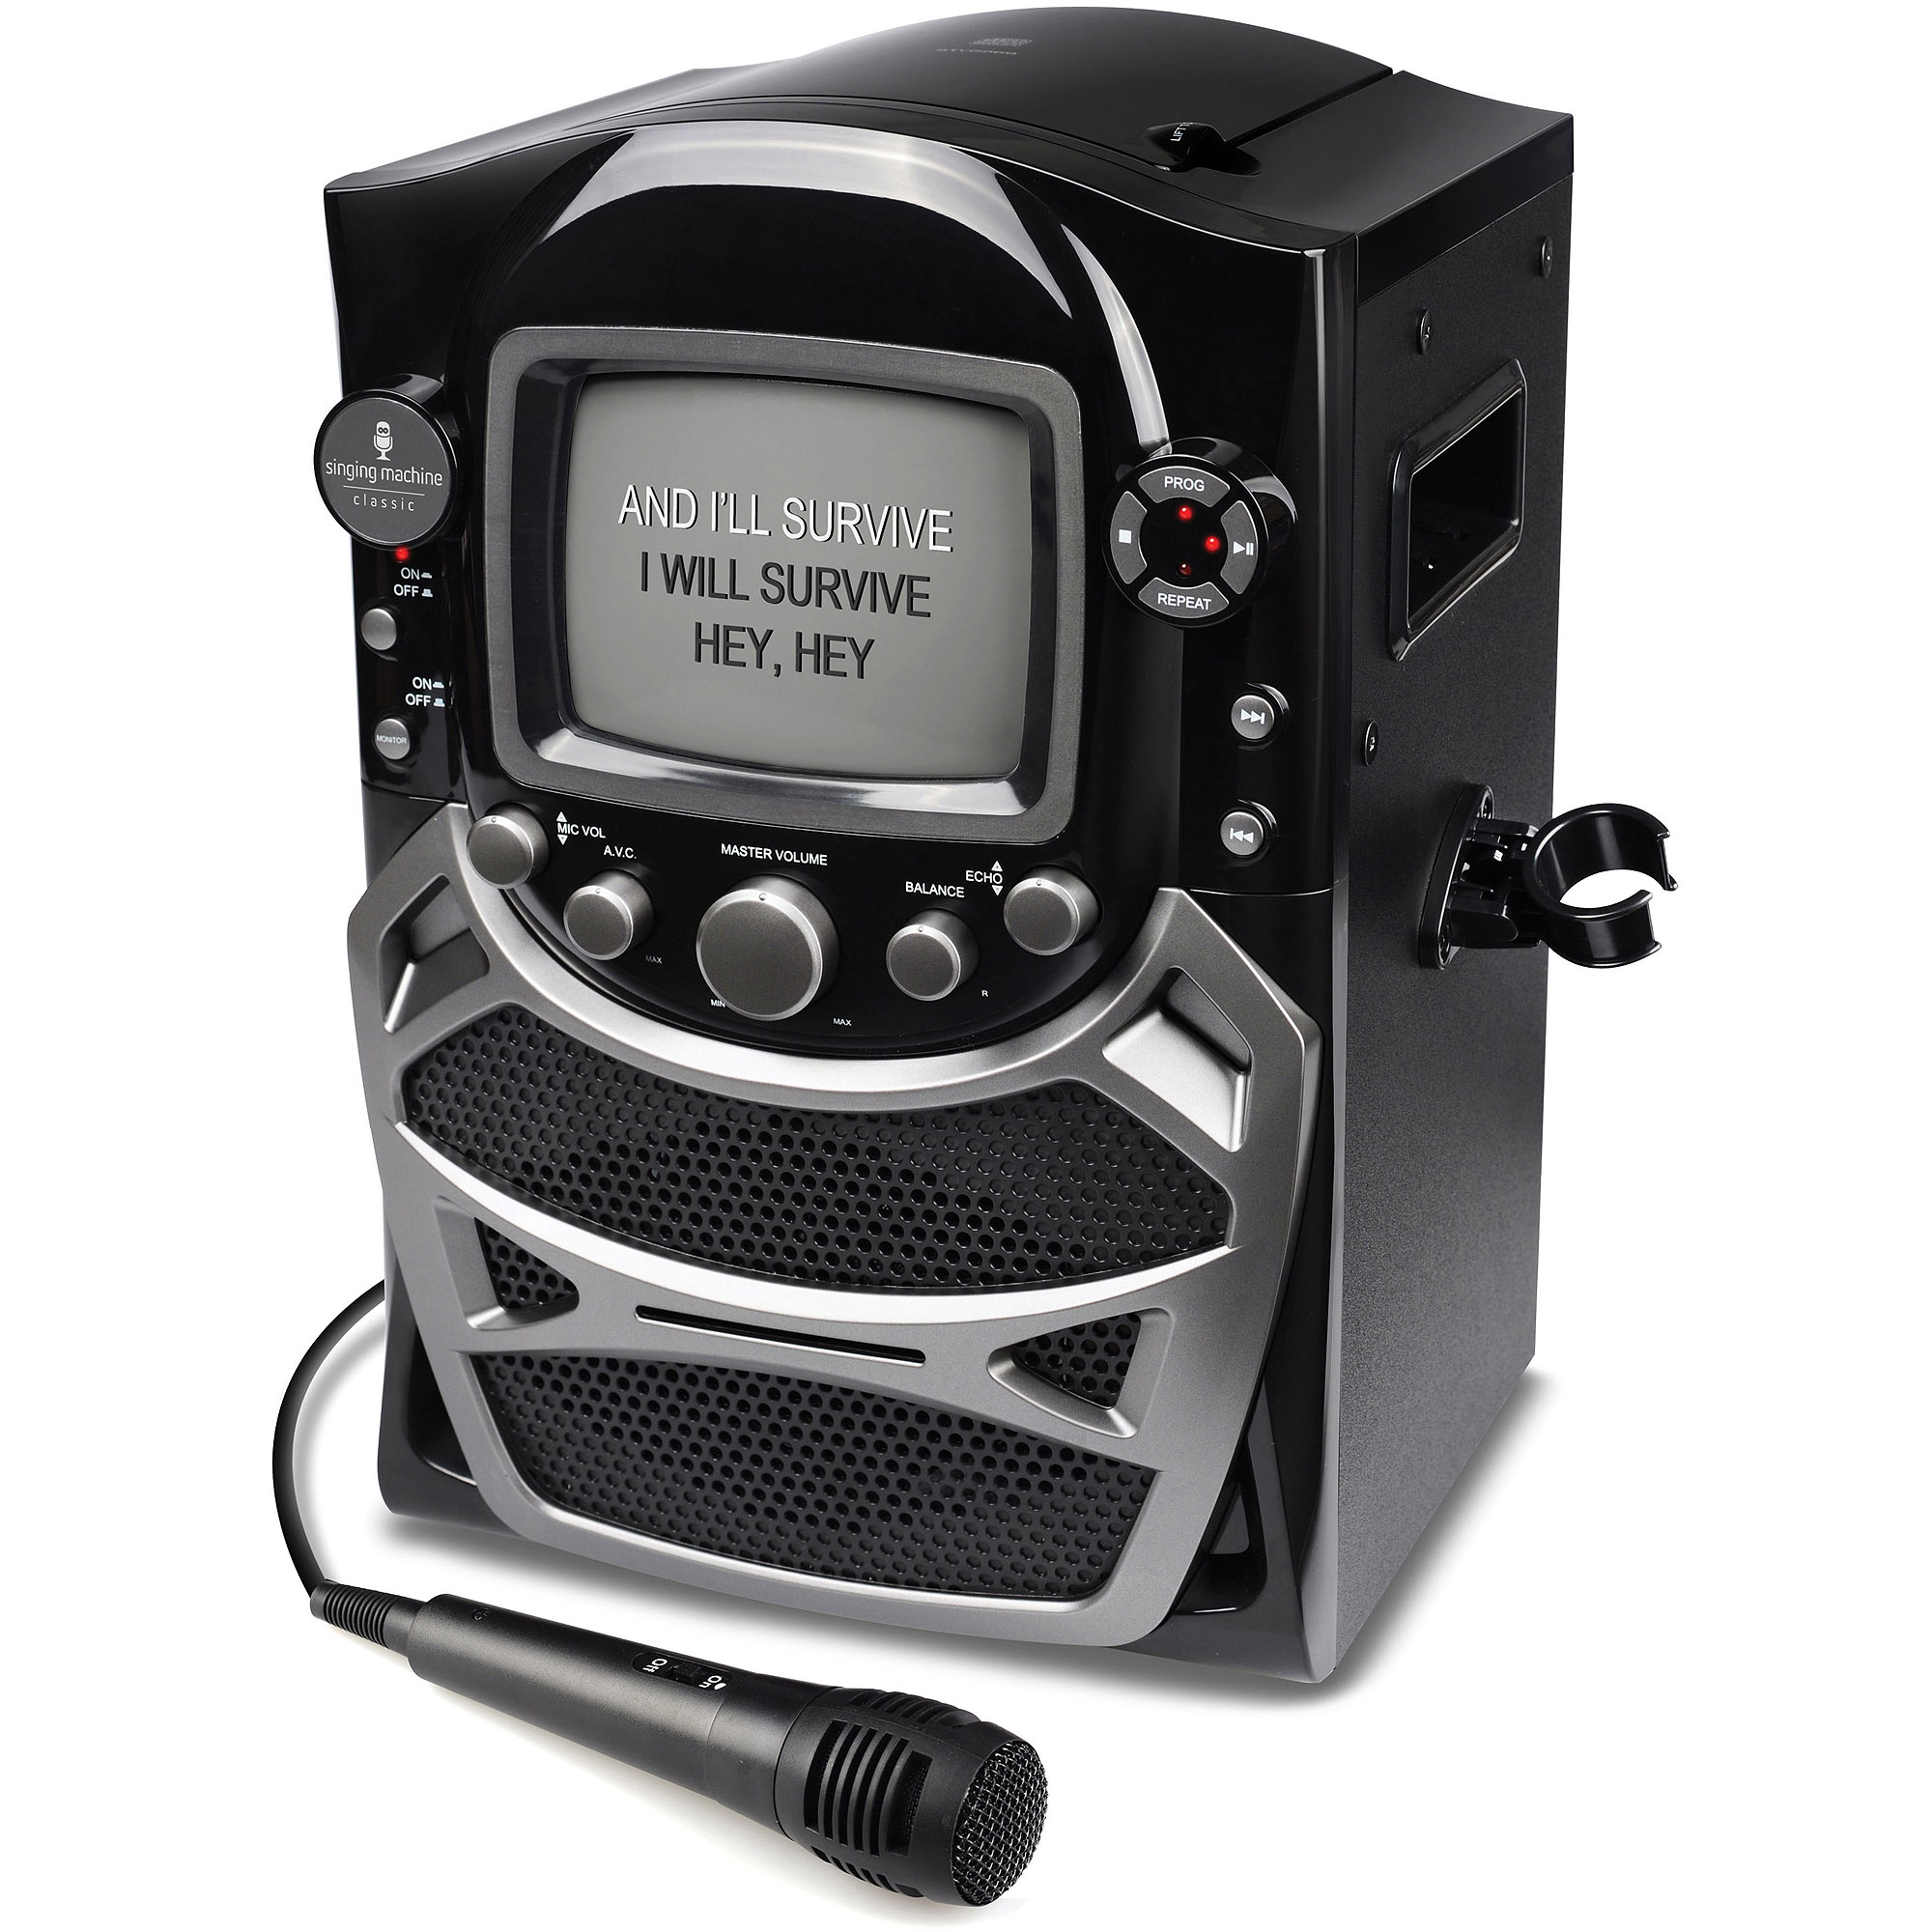 "Singing Machine CD+G Karaoke System with Built-in 5.5"" B&W CRT Monitor and Microphone"